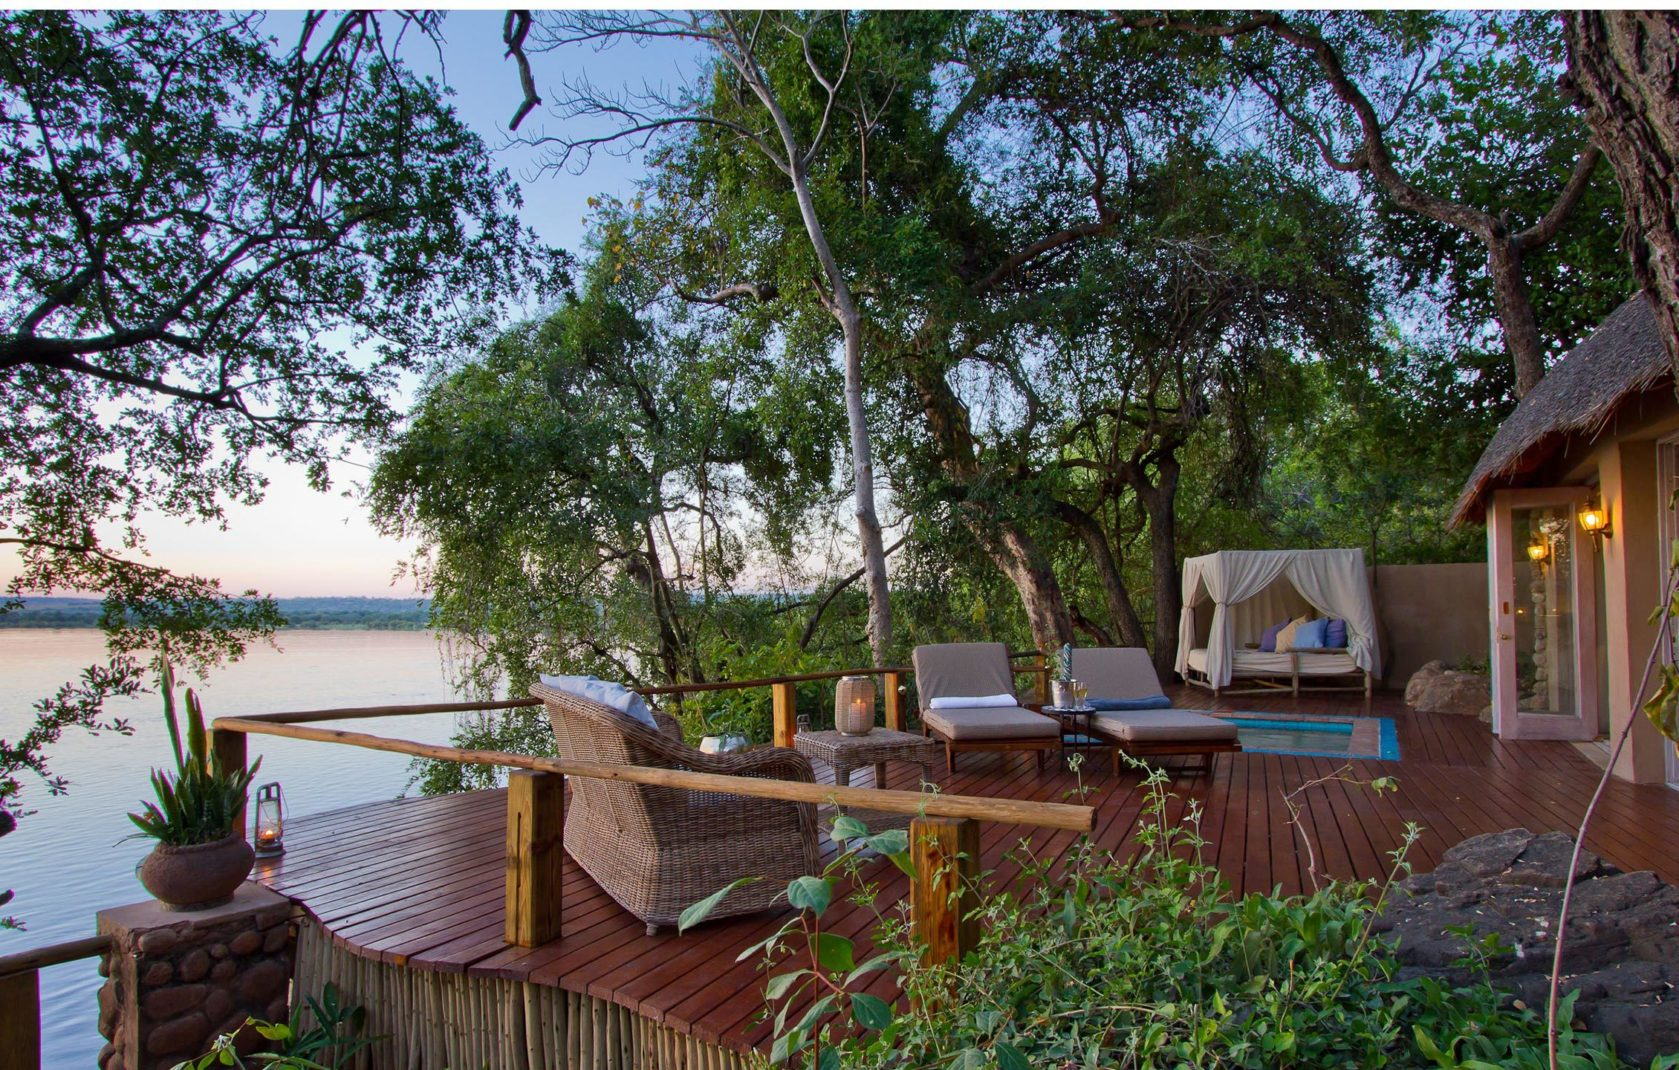 Top5 Romancehotels 09  Zambia Scnd Layer B